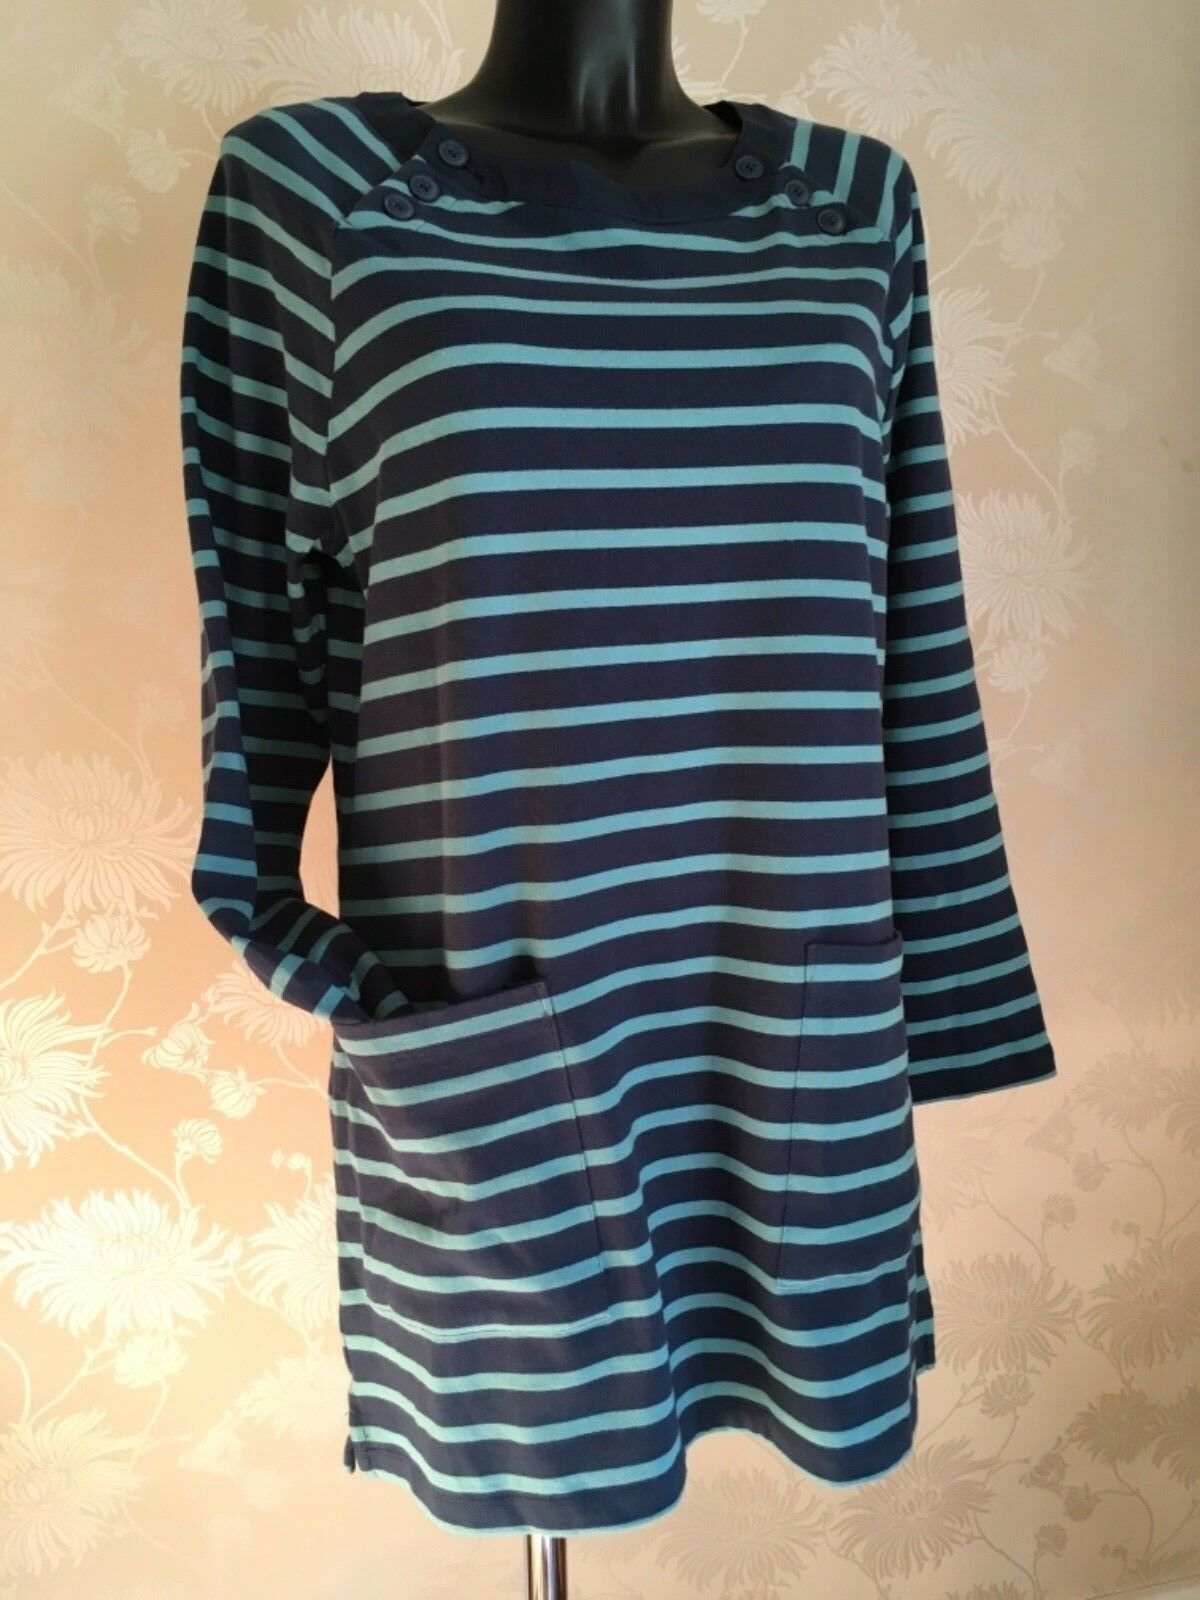 SEASALT Tamper Striped Tunic Top Thick Cotton Breton Night Eucalyptus BNWT